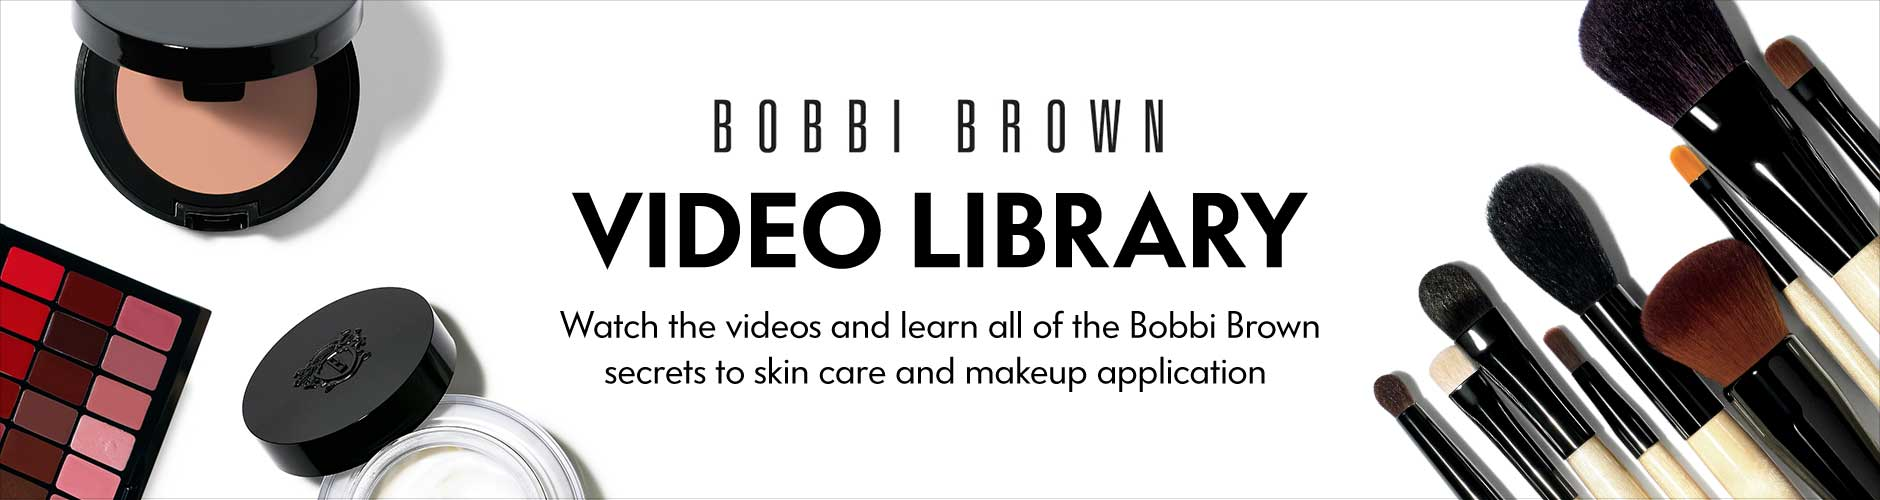 Bobbi Brown Video Library - Watch the videos and learn all of the Bobbi Brown secrets to skin care and makeup application